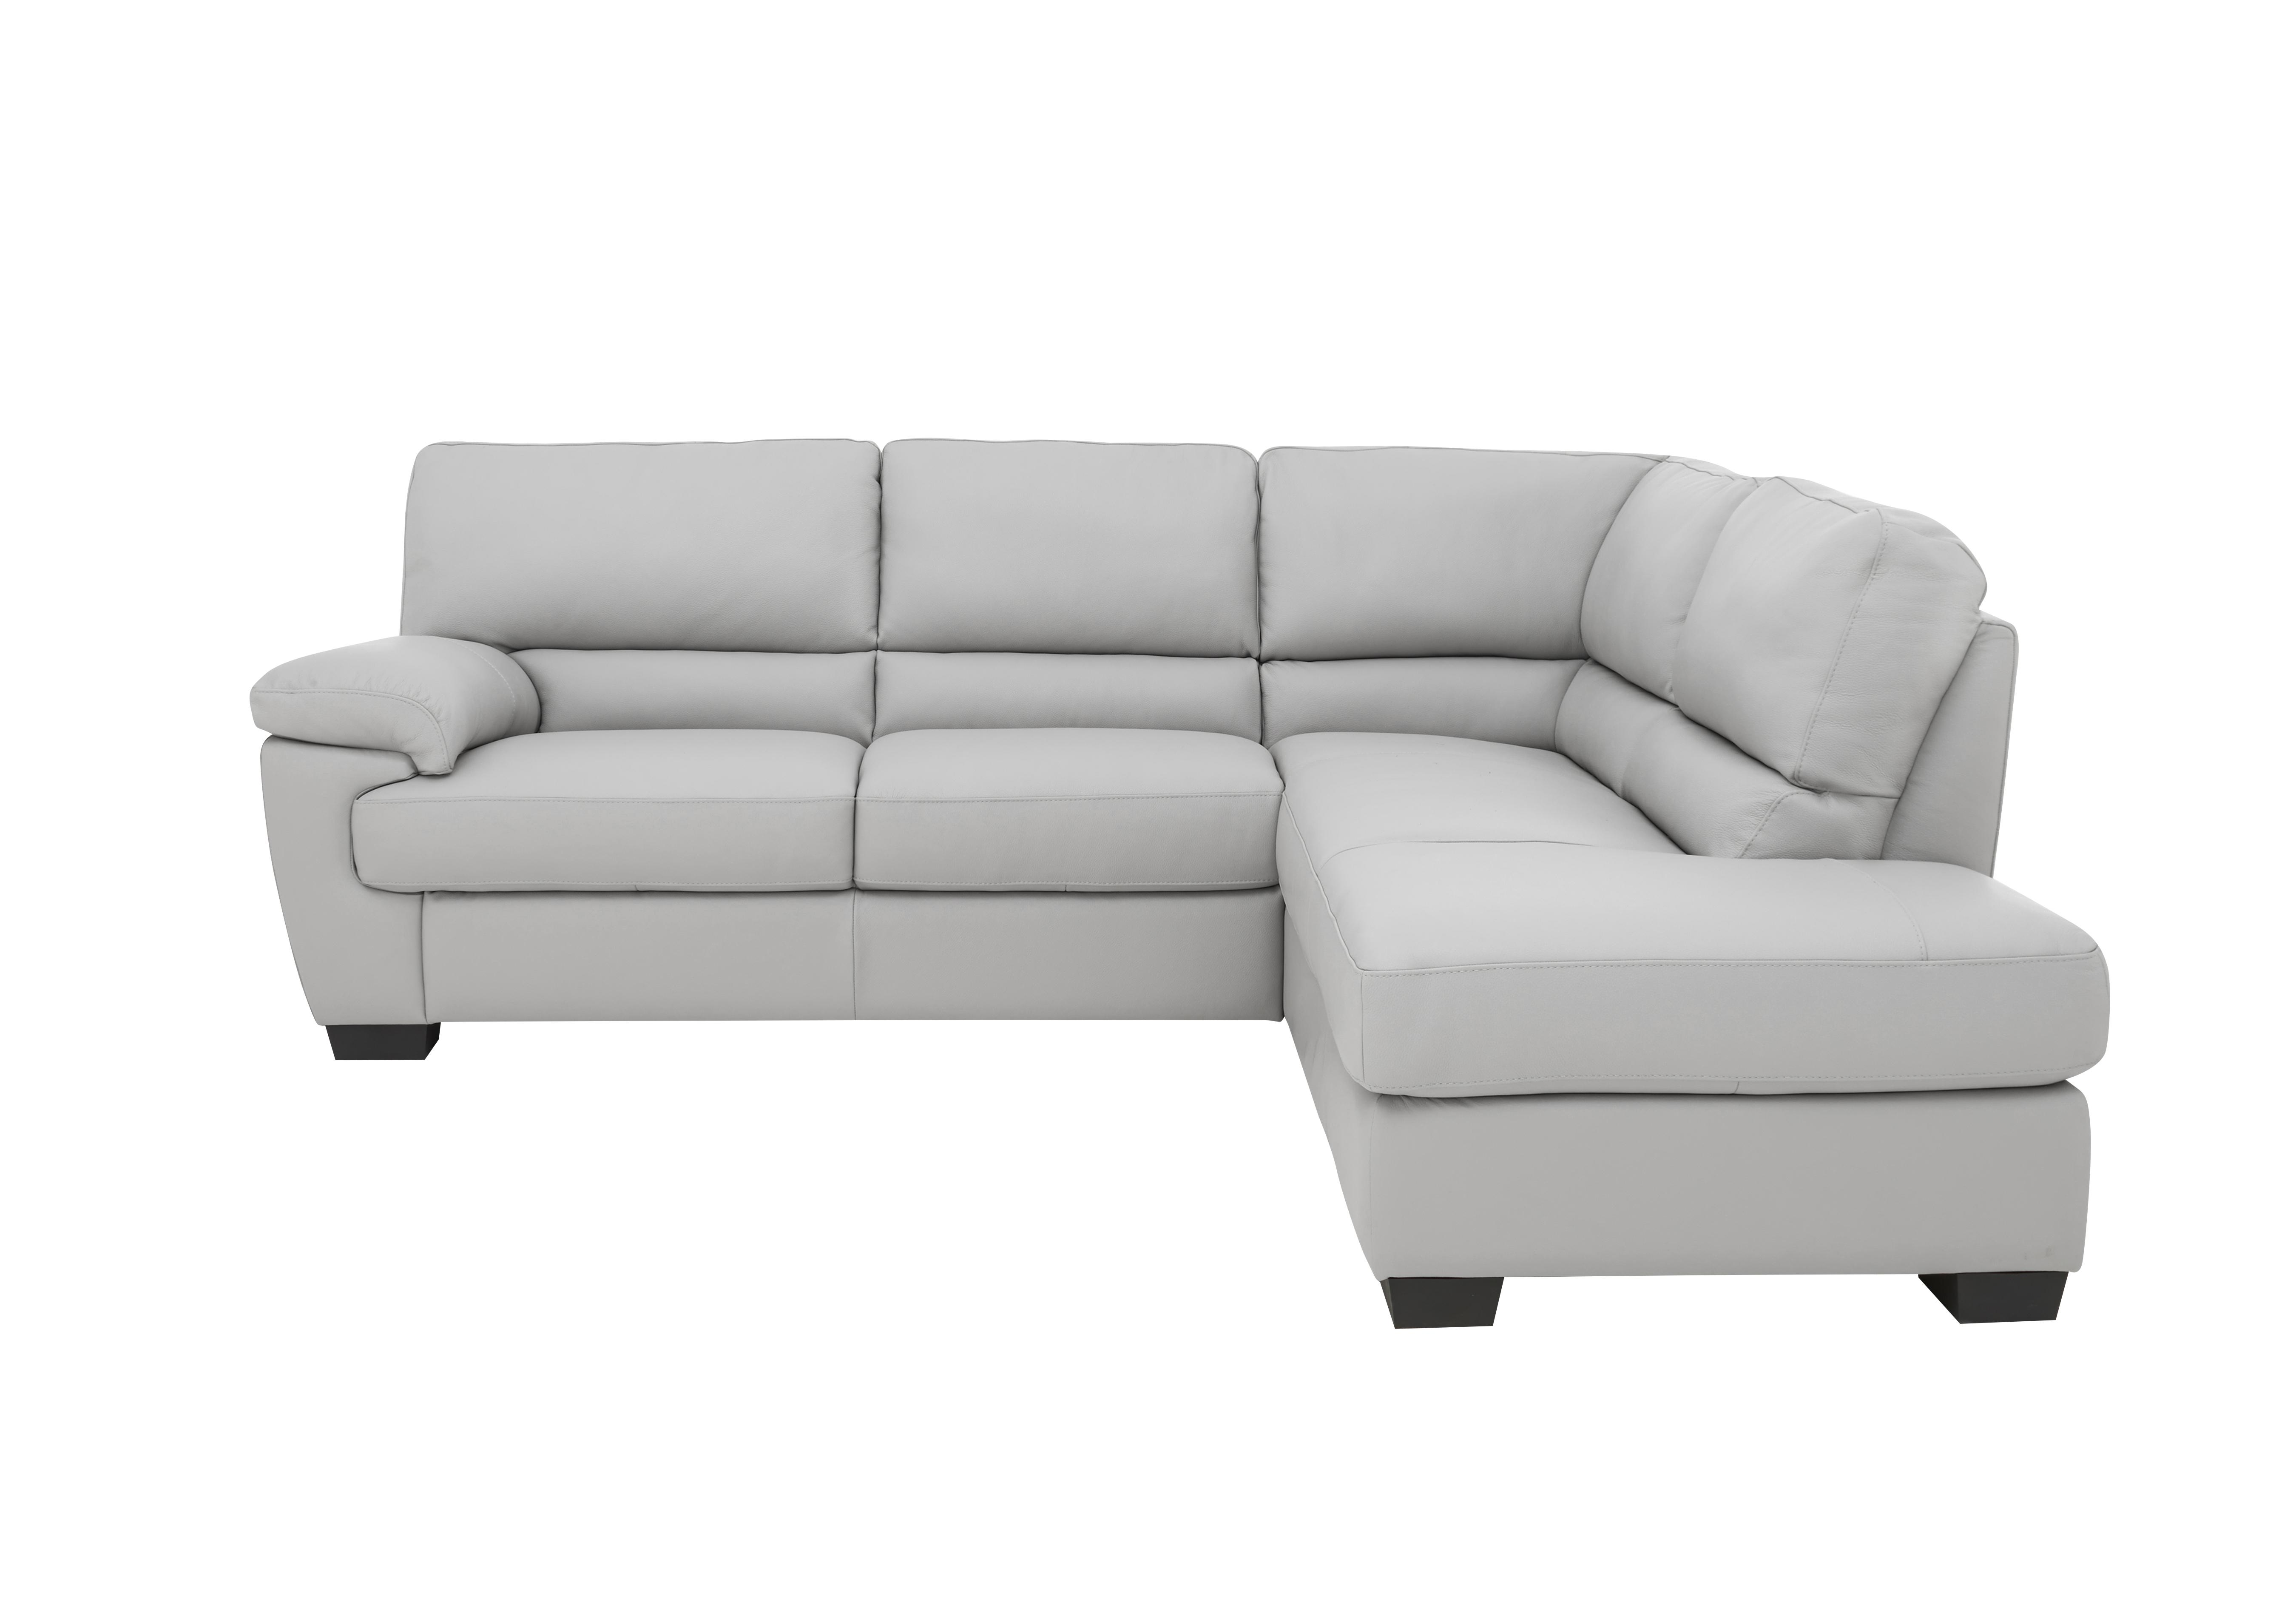 An overview of leather corner sofa